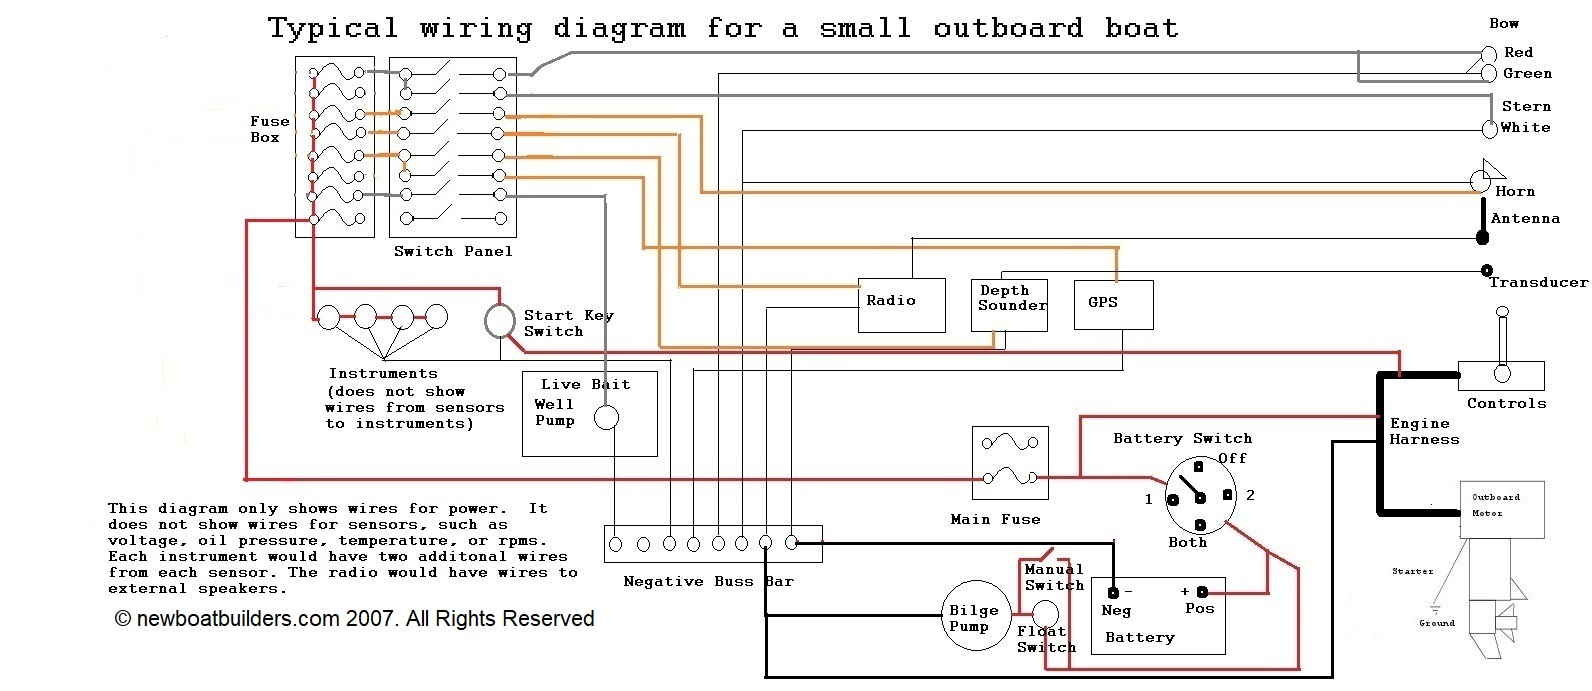 Boat 12V Switch Panel Wiring Diagram from newboatbuilders.com